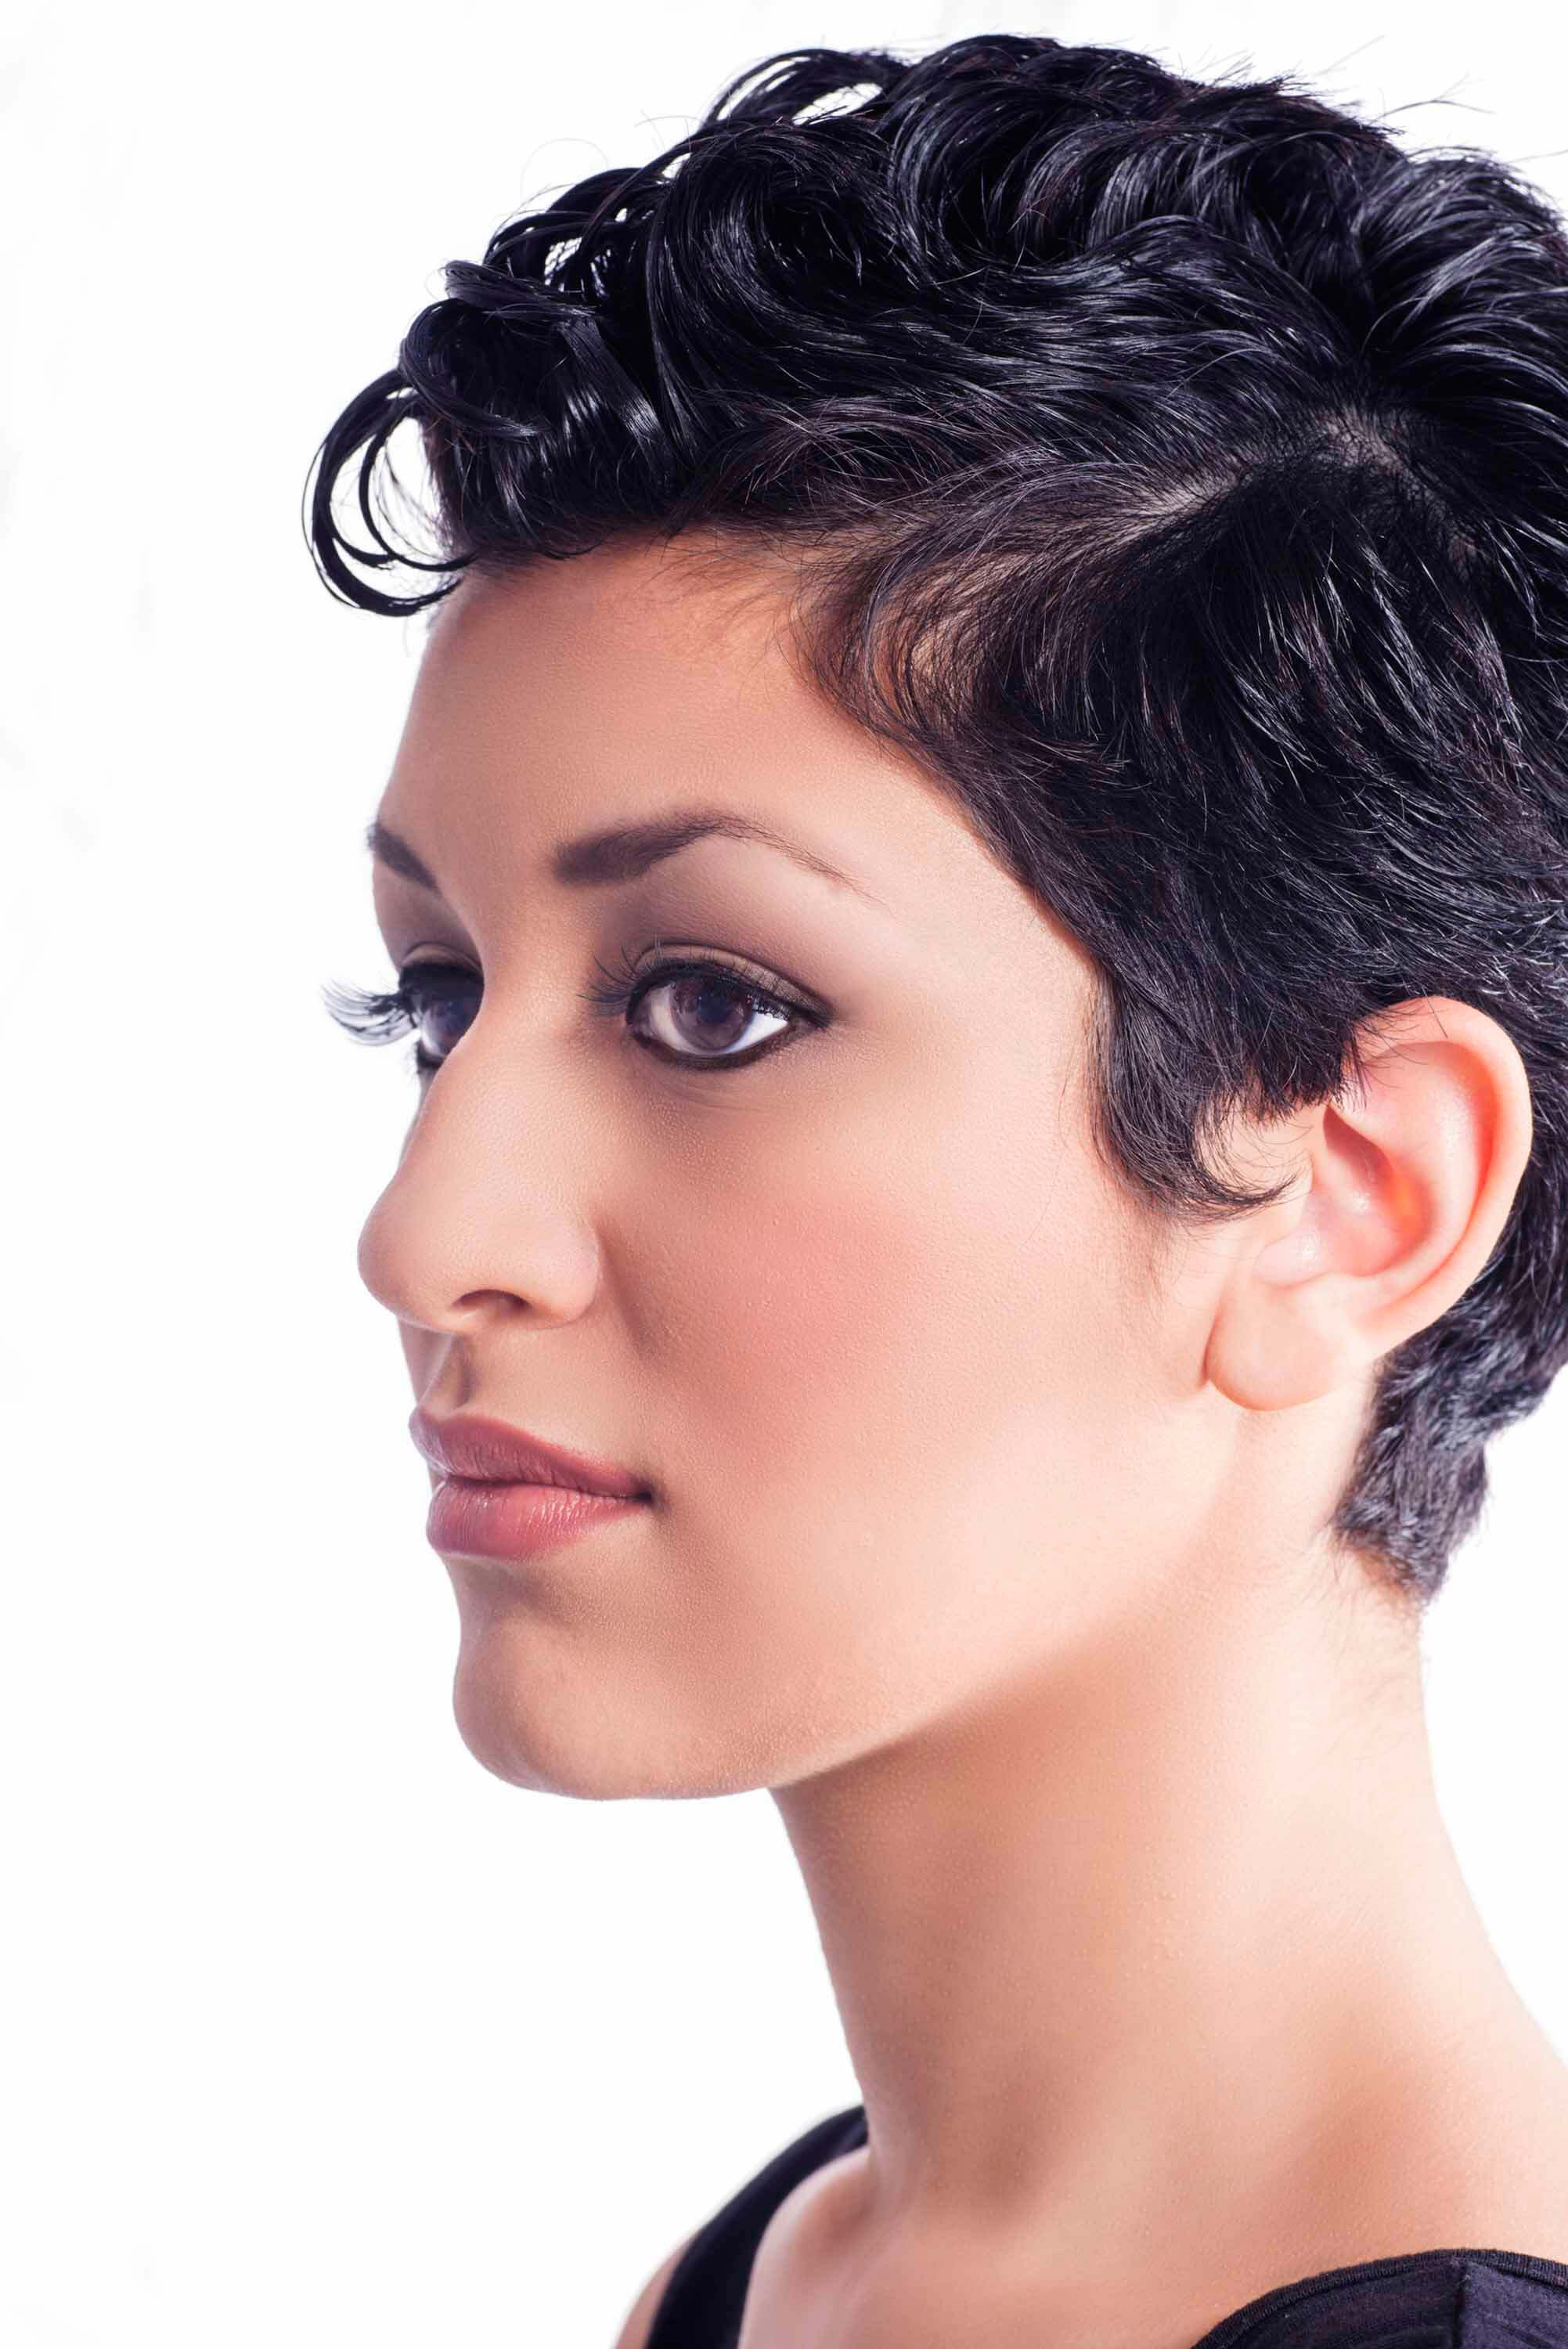 best way to style hair style pixie cuts hair tips and advice to make the most 7154